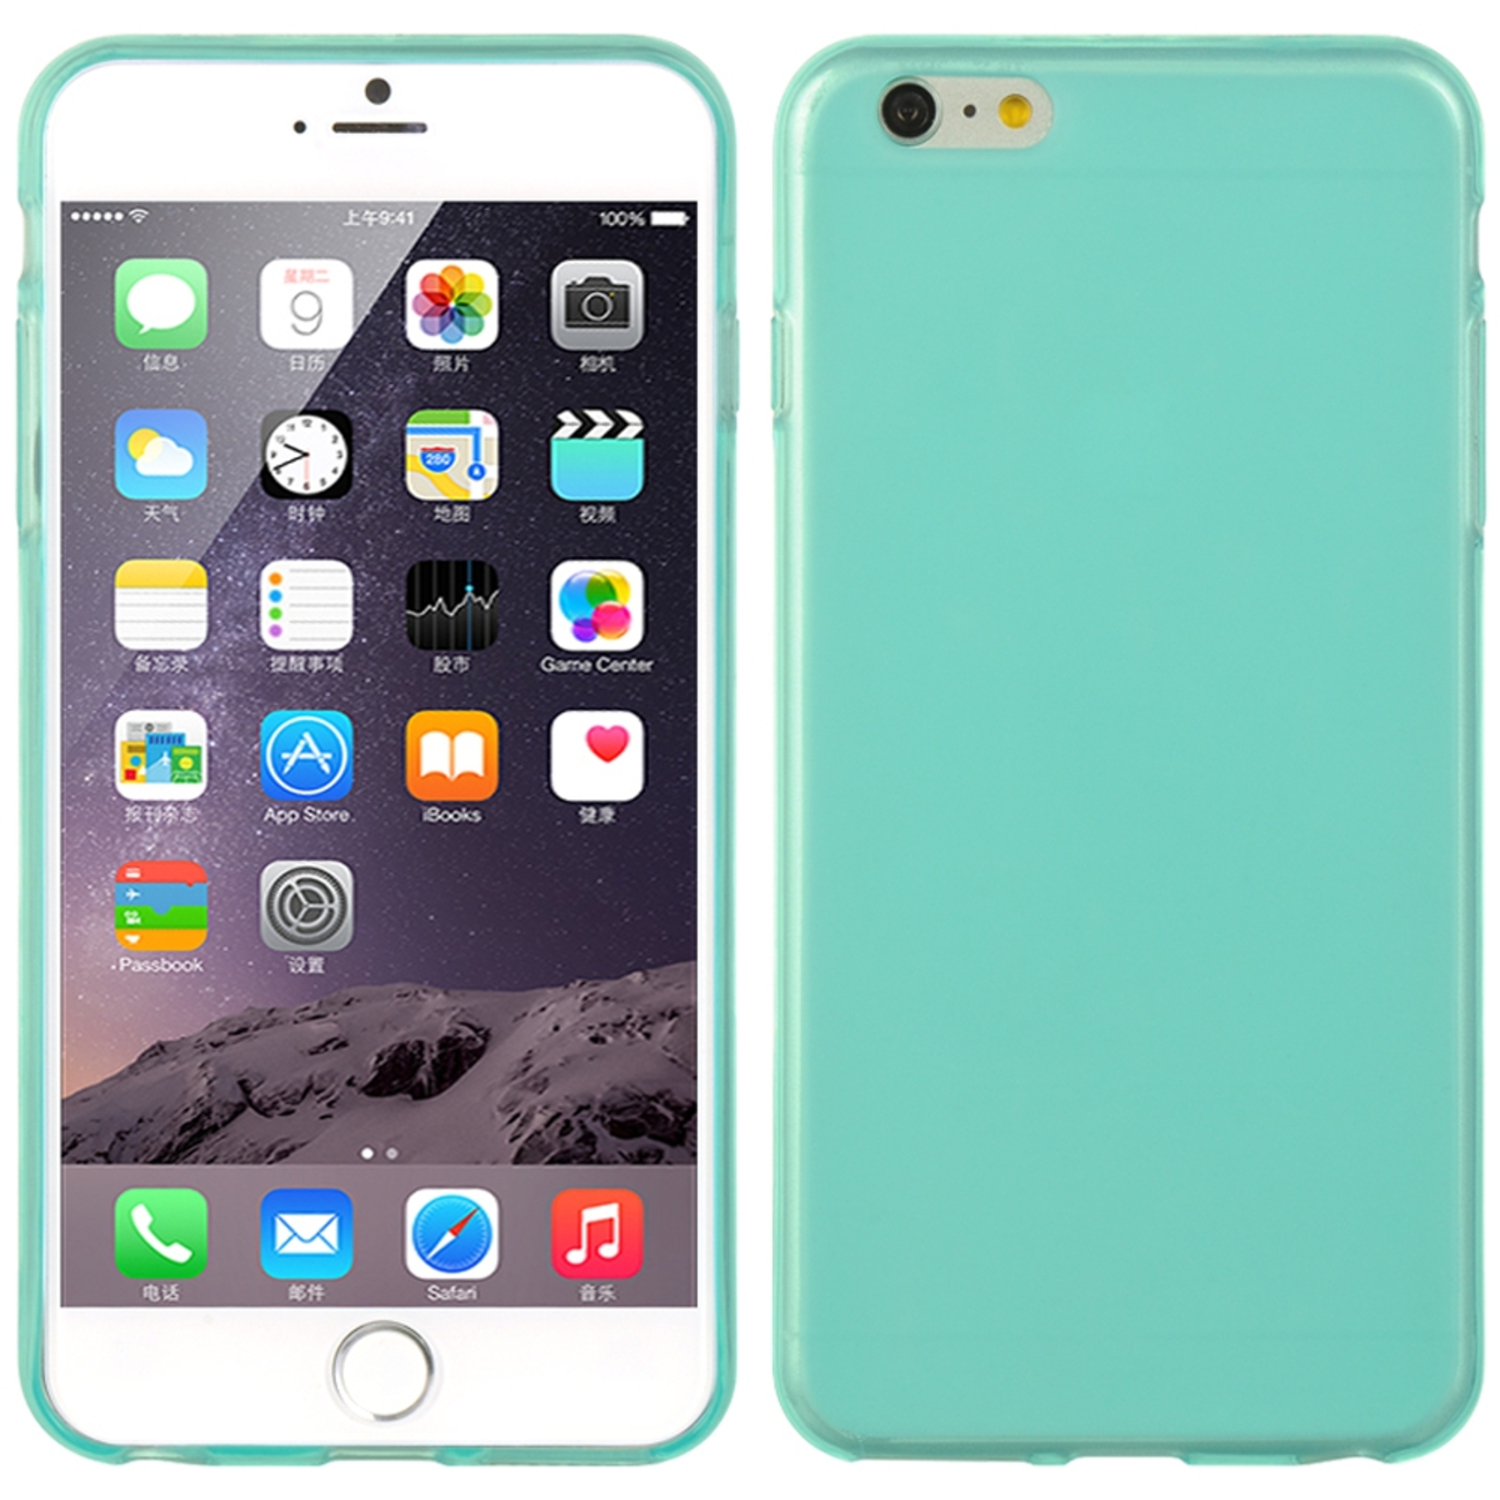 iPhone 6s Plus, iPhone 6 Plus Case, by Insten Crystal Skin Tinted TPU Rubber Gel Shell Case For Apple iPhone 6s Plus / 6 Plus